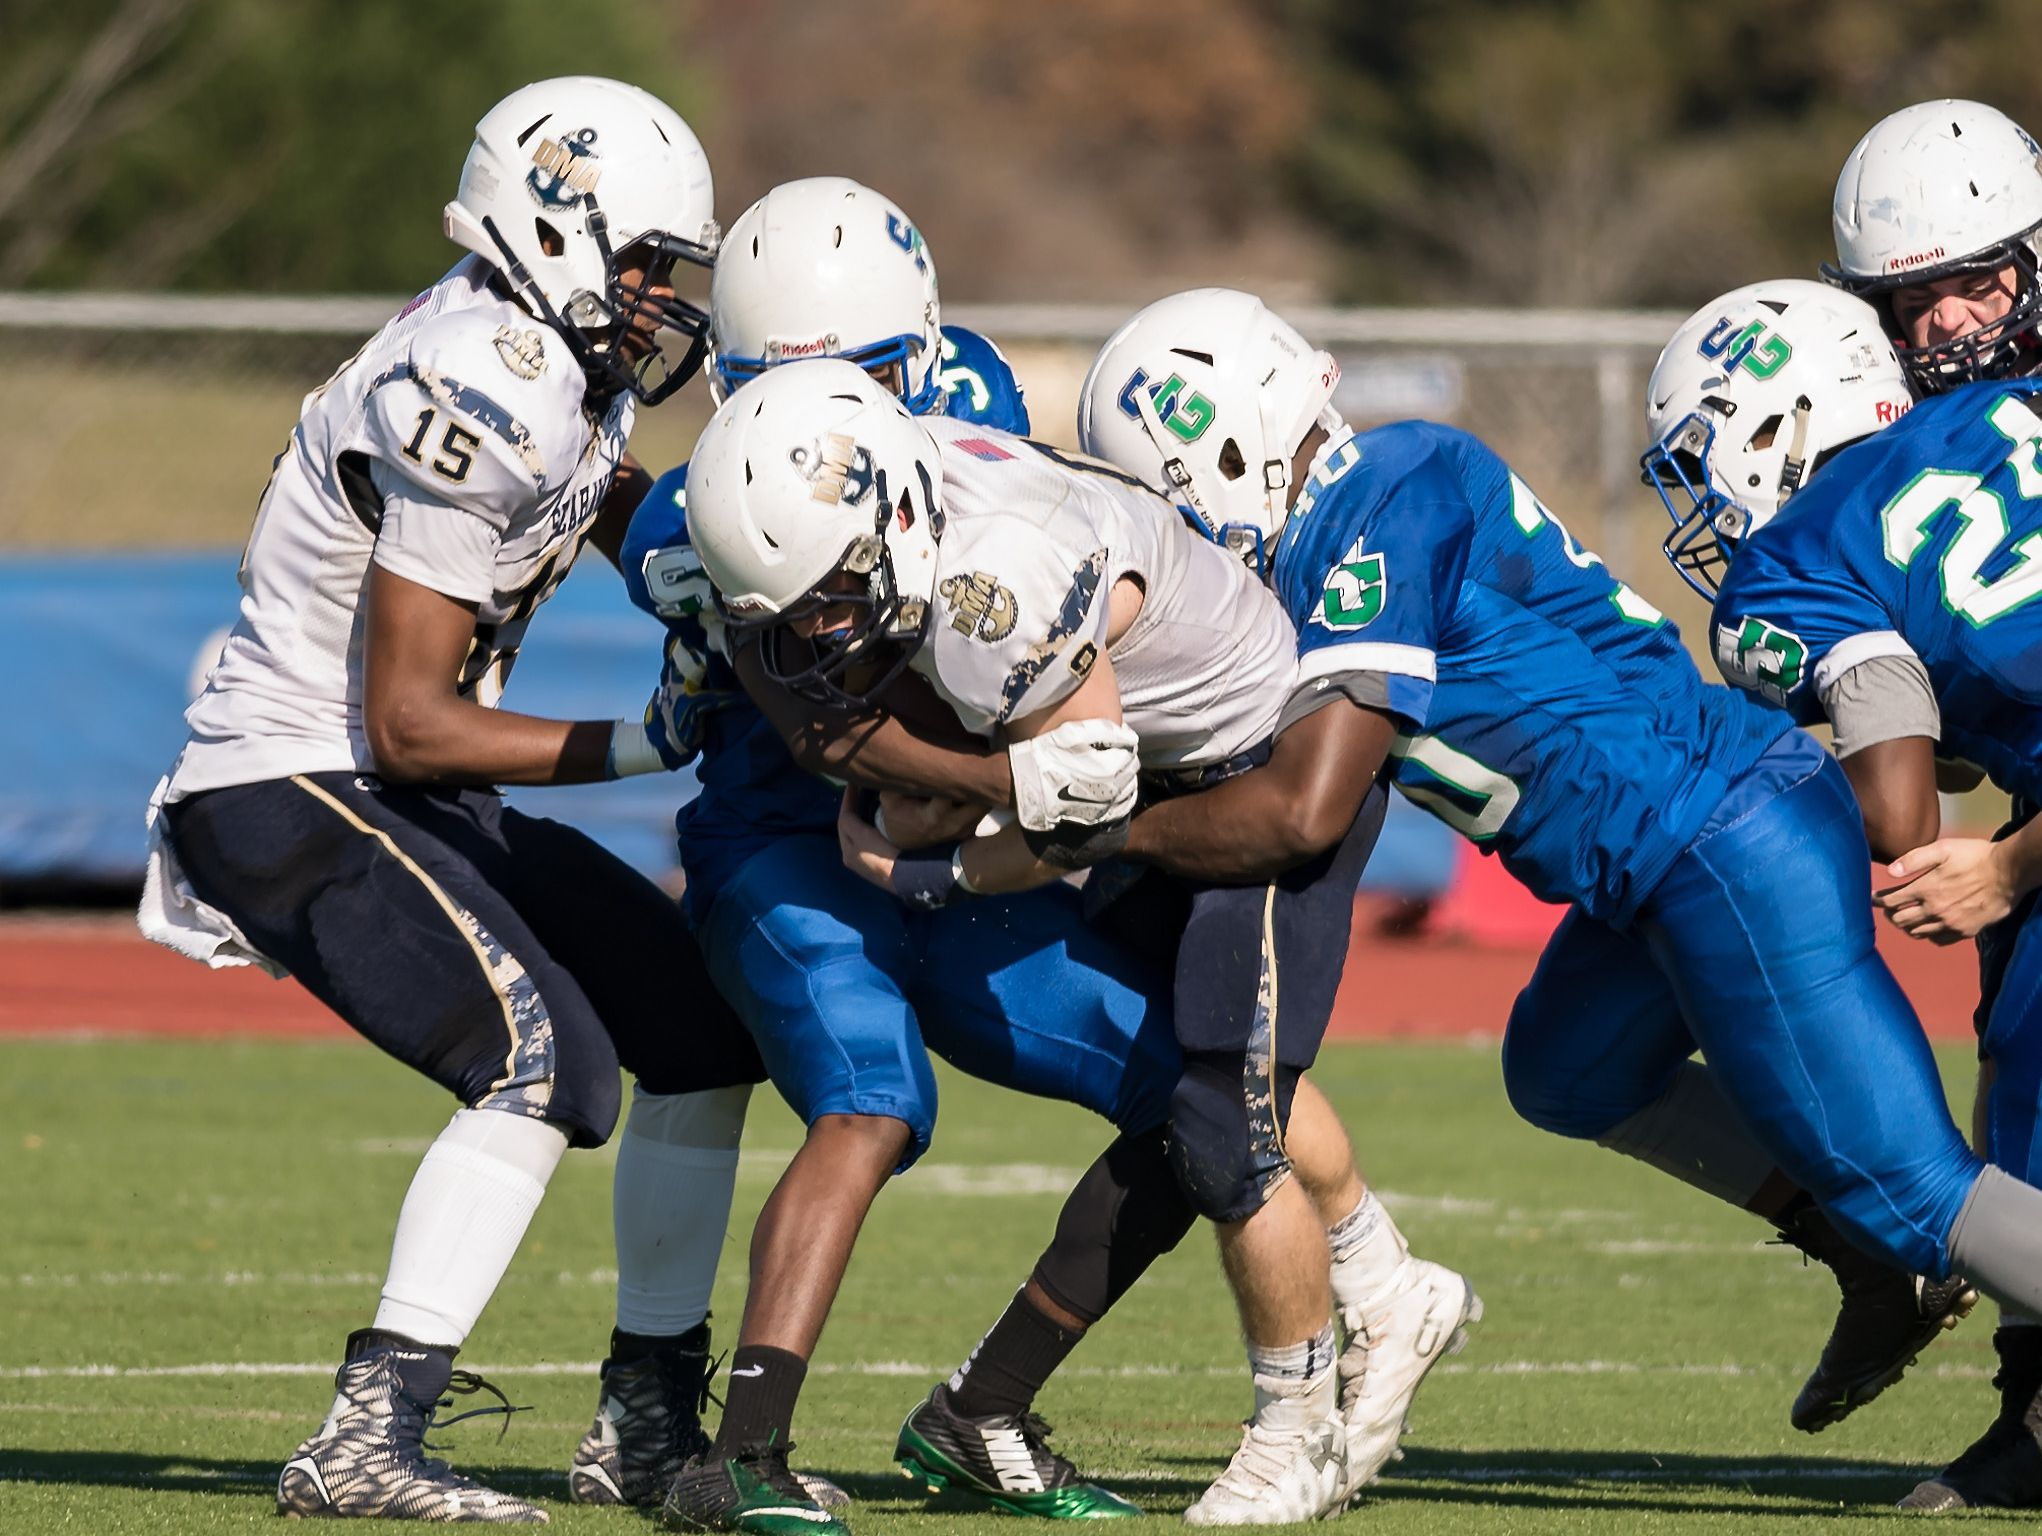 Jacob Hudson, QB for DMA, is brought down by a wall of St. Geroges defenders as DMA plays at St. Georges in the opening round of DIAA Division II playoffs.